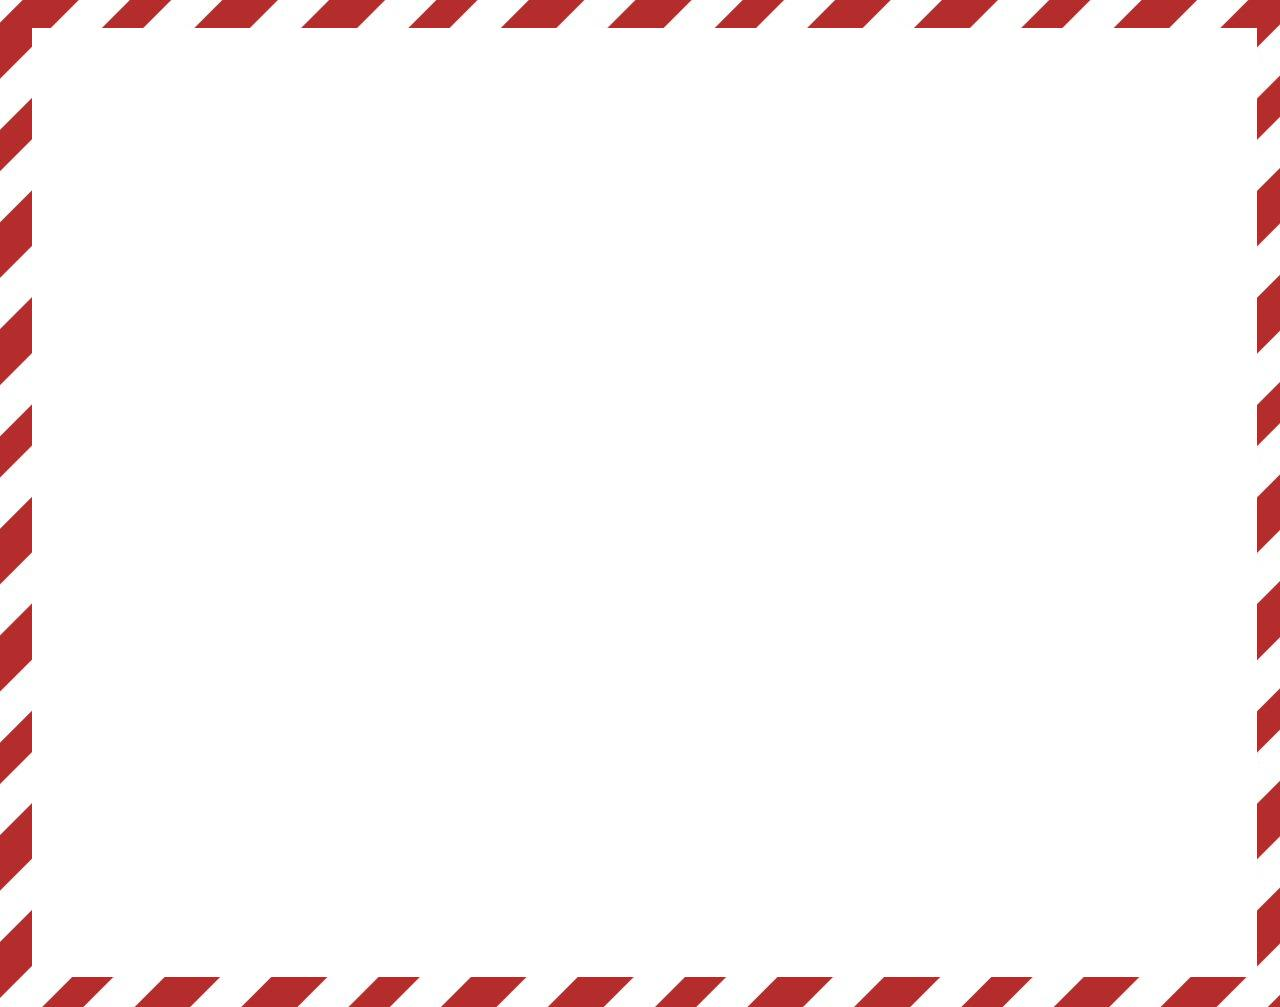 Candy Canes Christmas Border Page Borders Auto Design Tech #zPBQNs ...